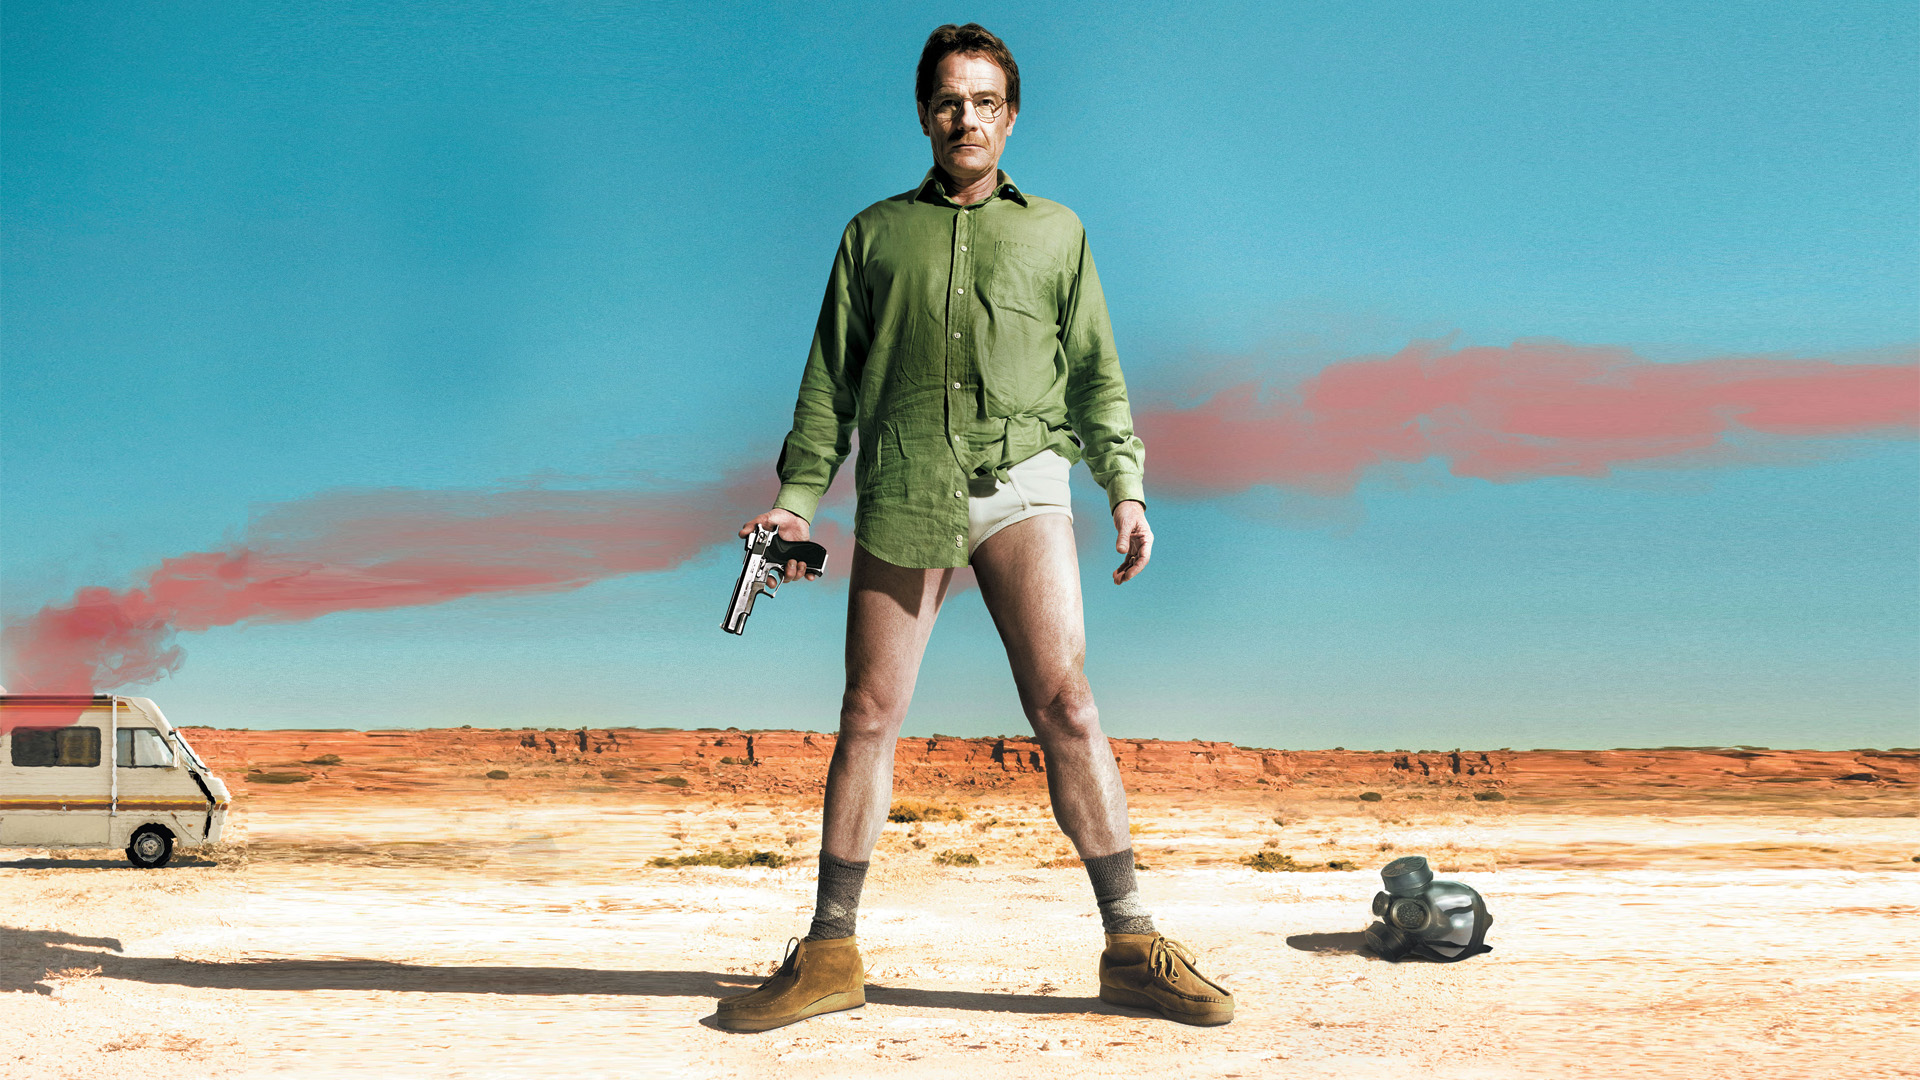 2013-08-15-breakingbad.jpg